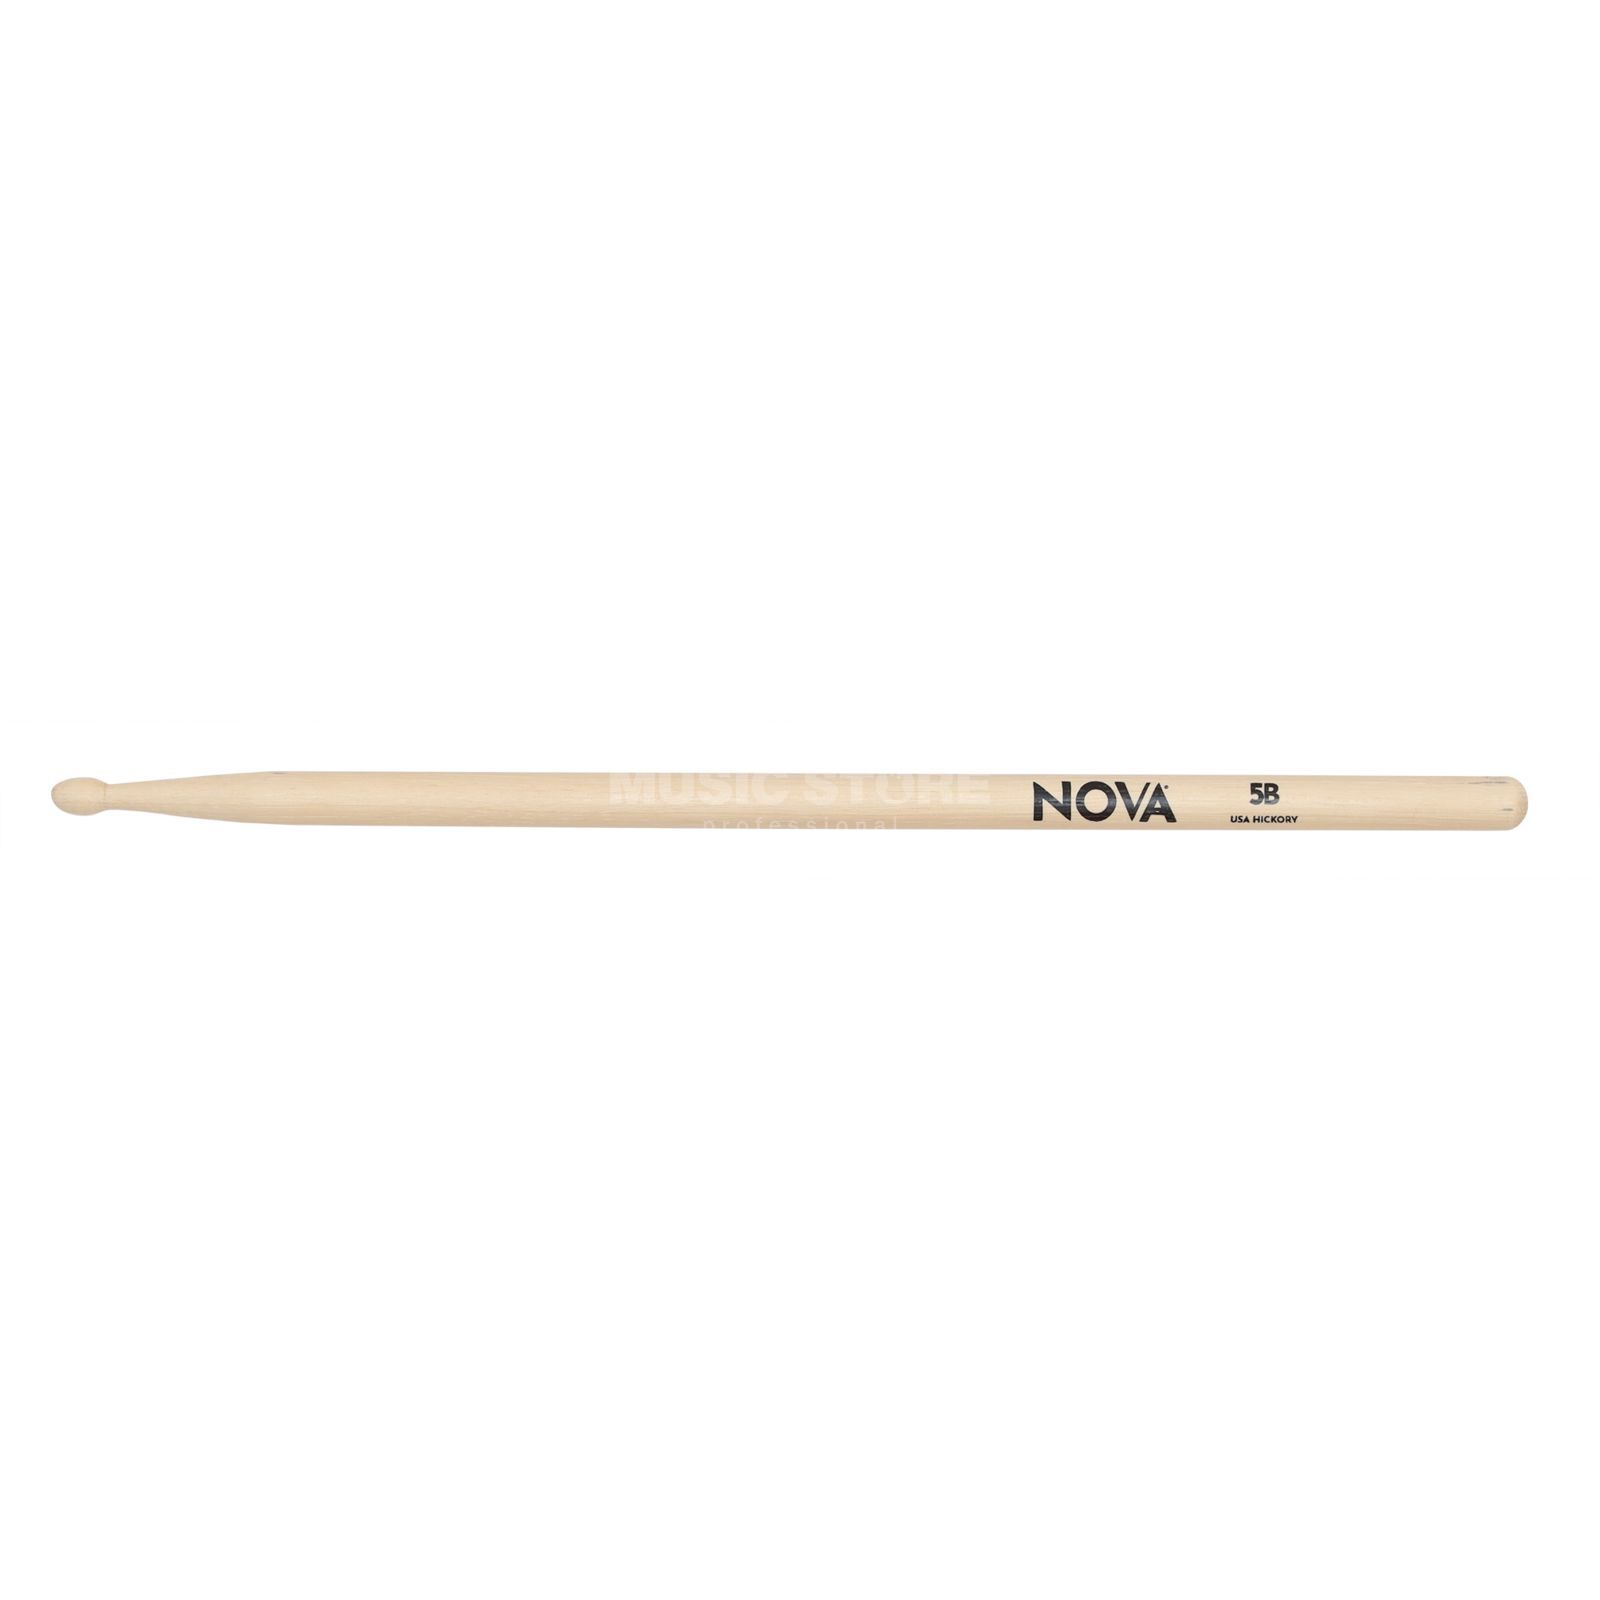 Vic-Firth Nova Drum Sticks 5B, Wood Tip Produktbillede